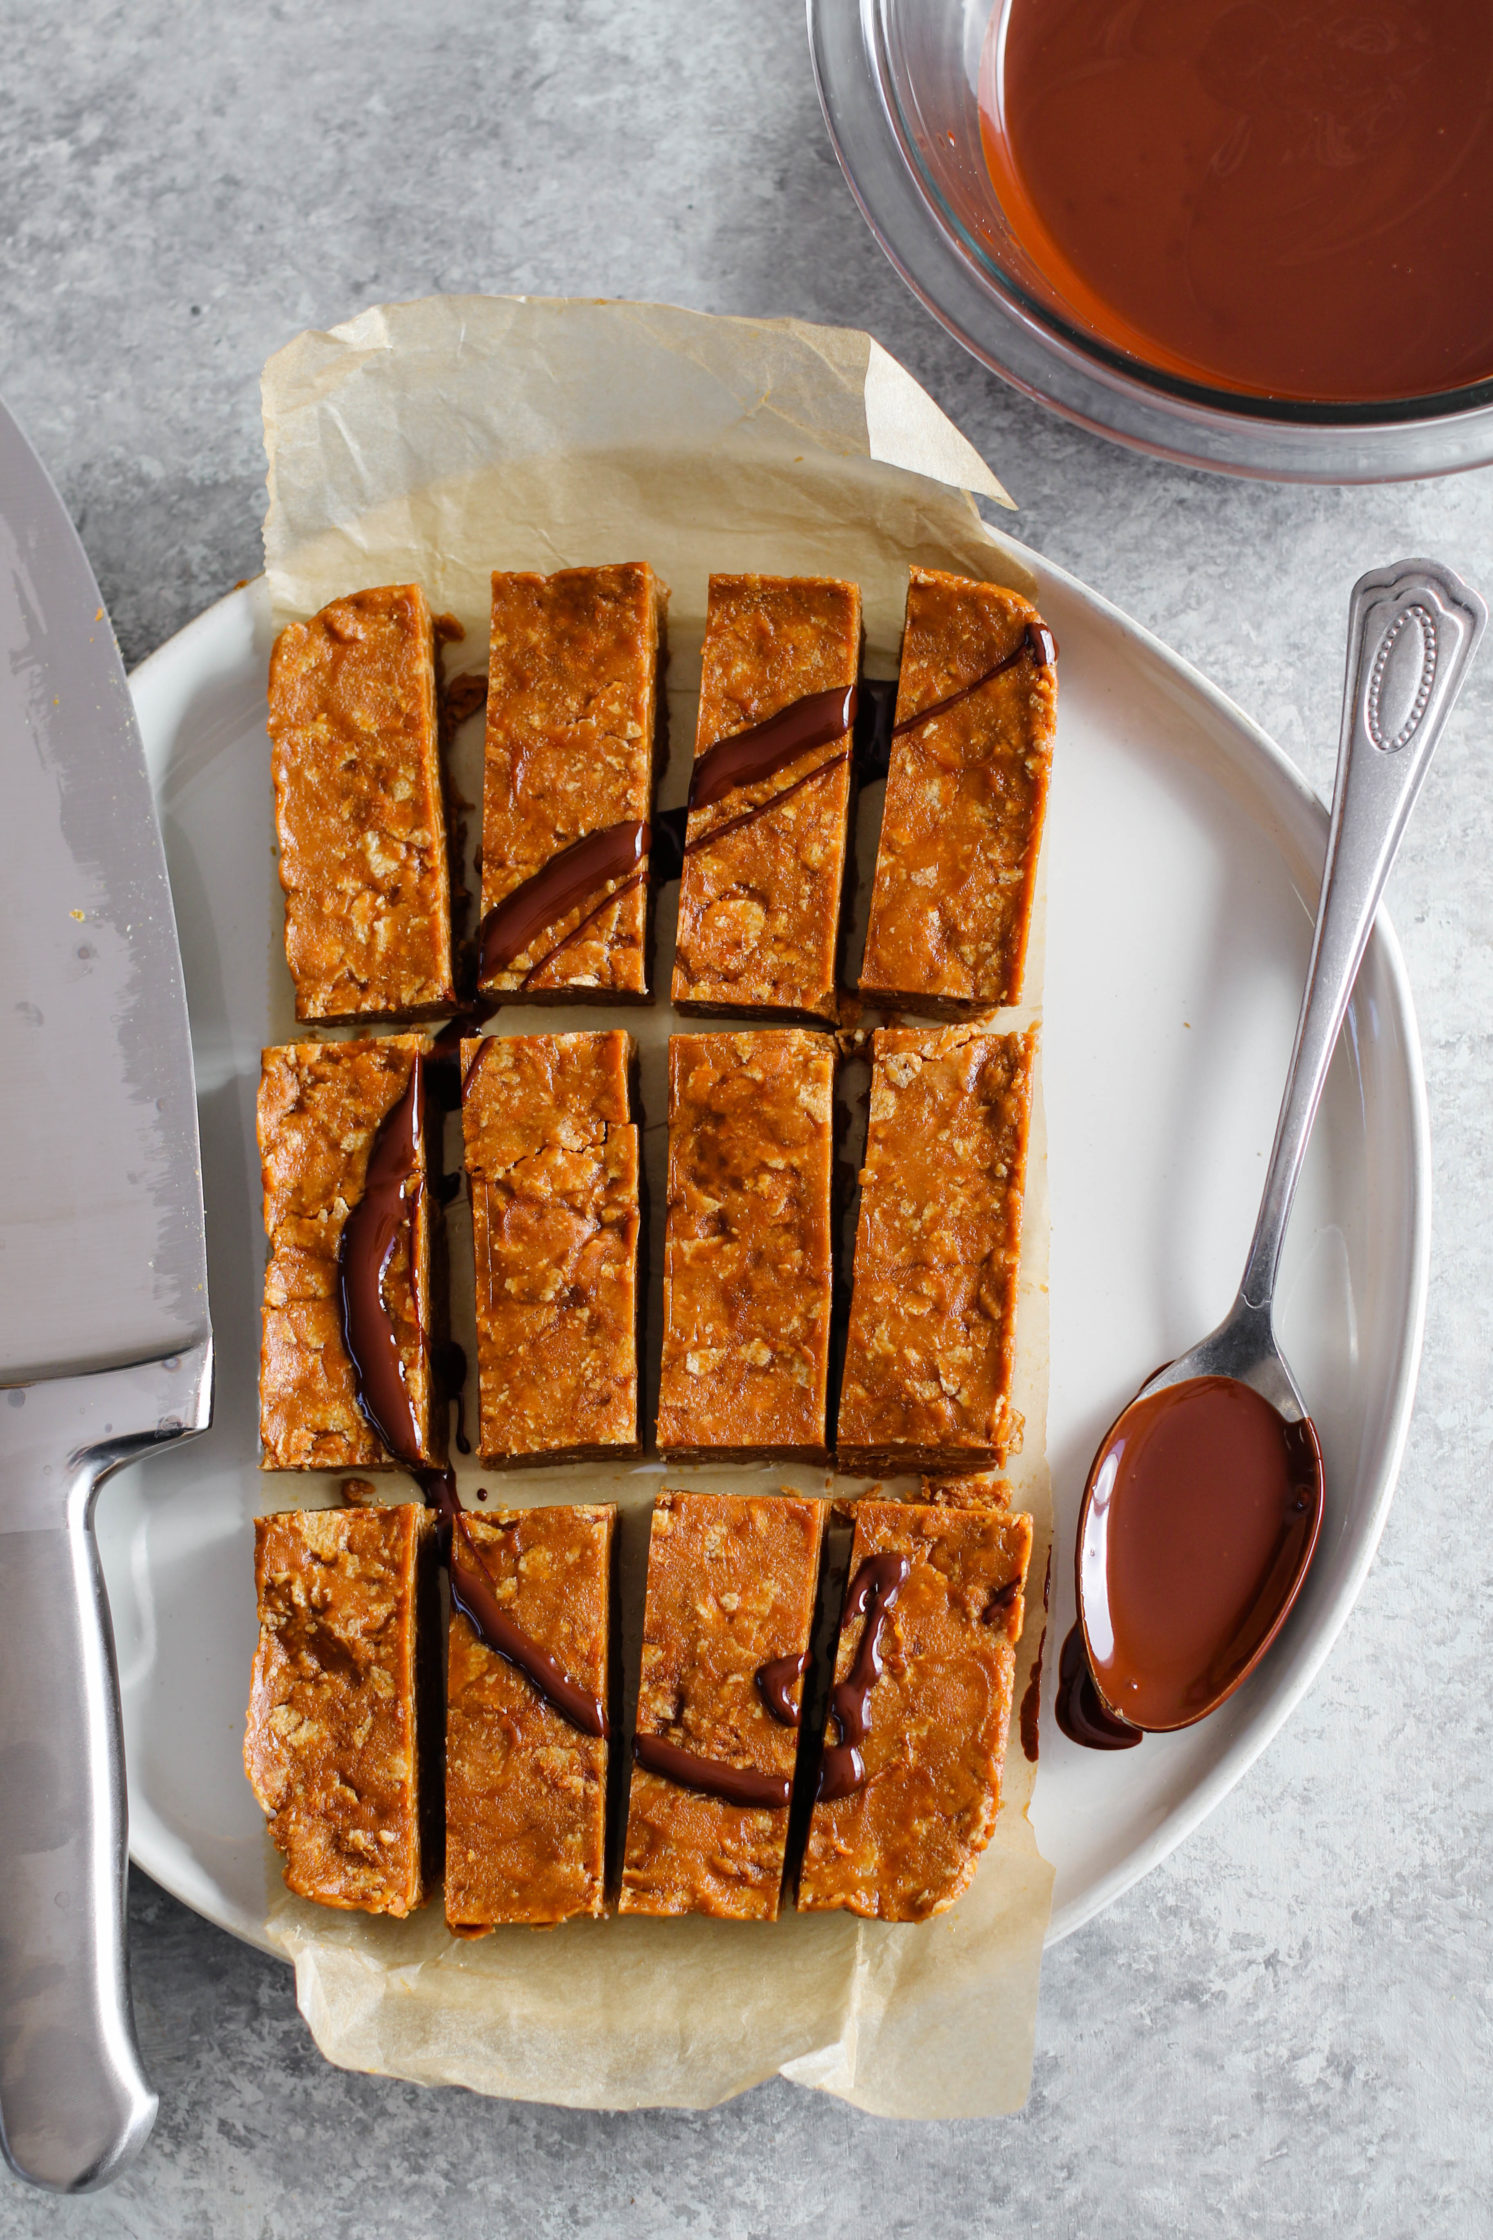 Vegan Peanut Butter Butterfingers drizzled with chocolate